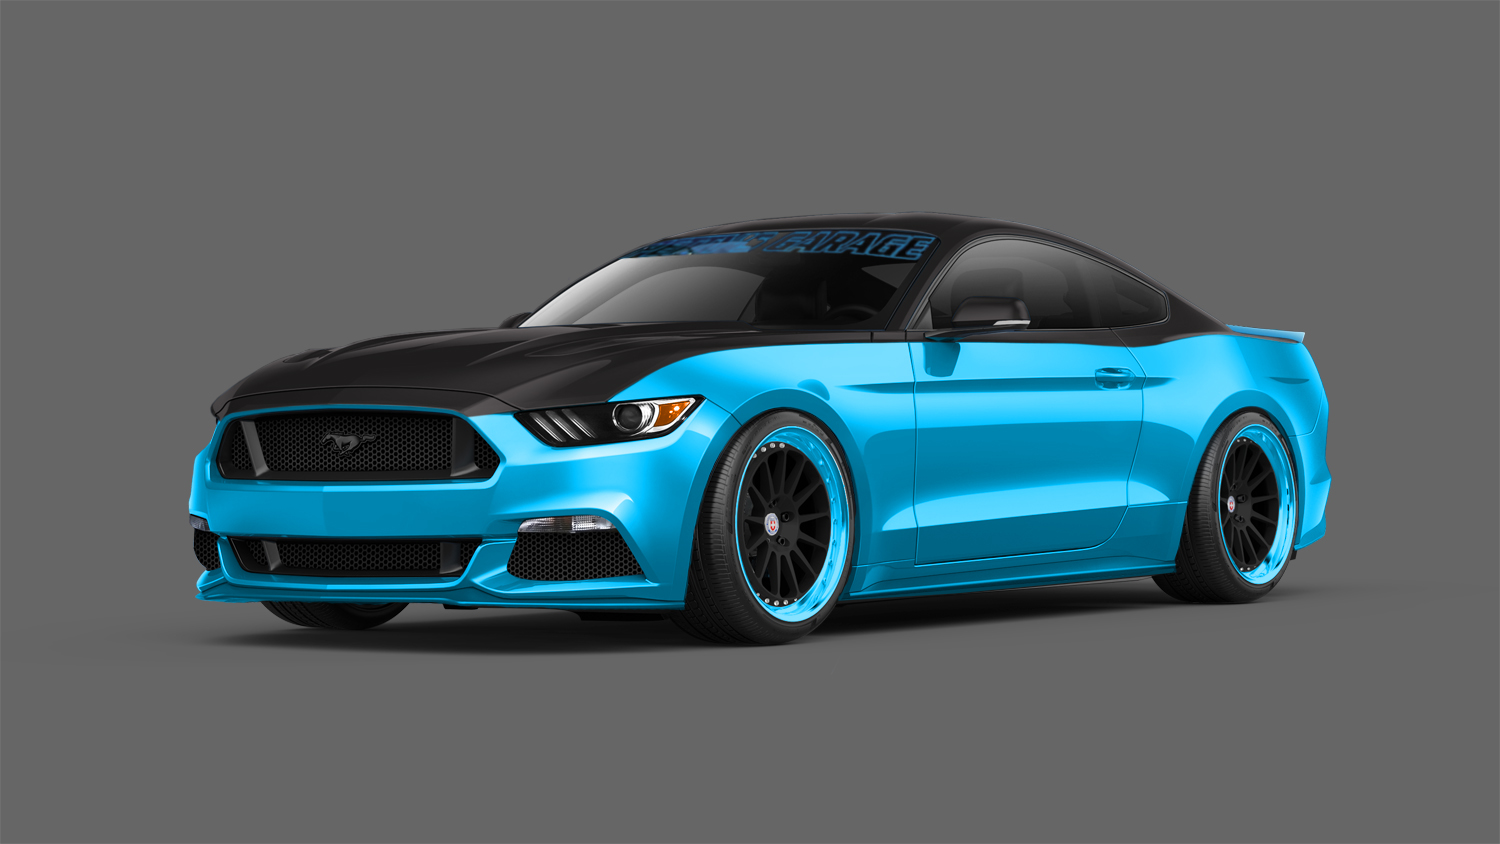 Petty's Garage 2015 Ford Mustang To Be Built In Limited ...